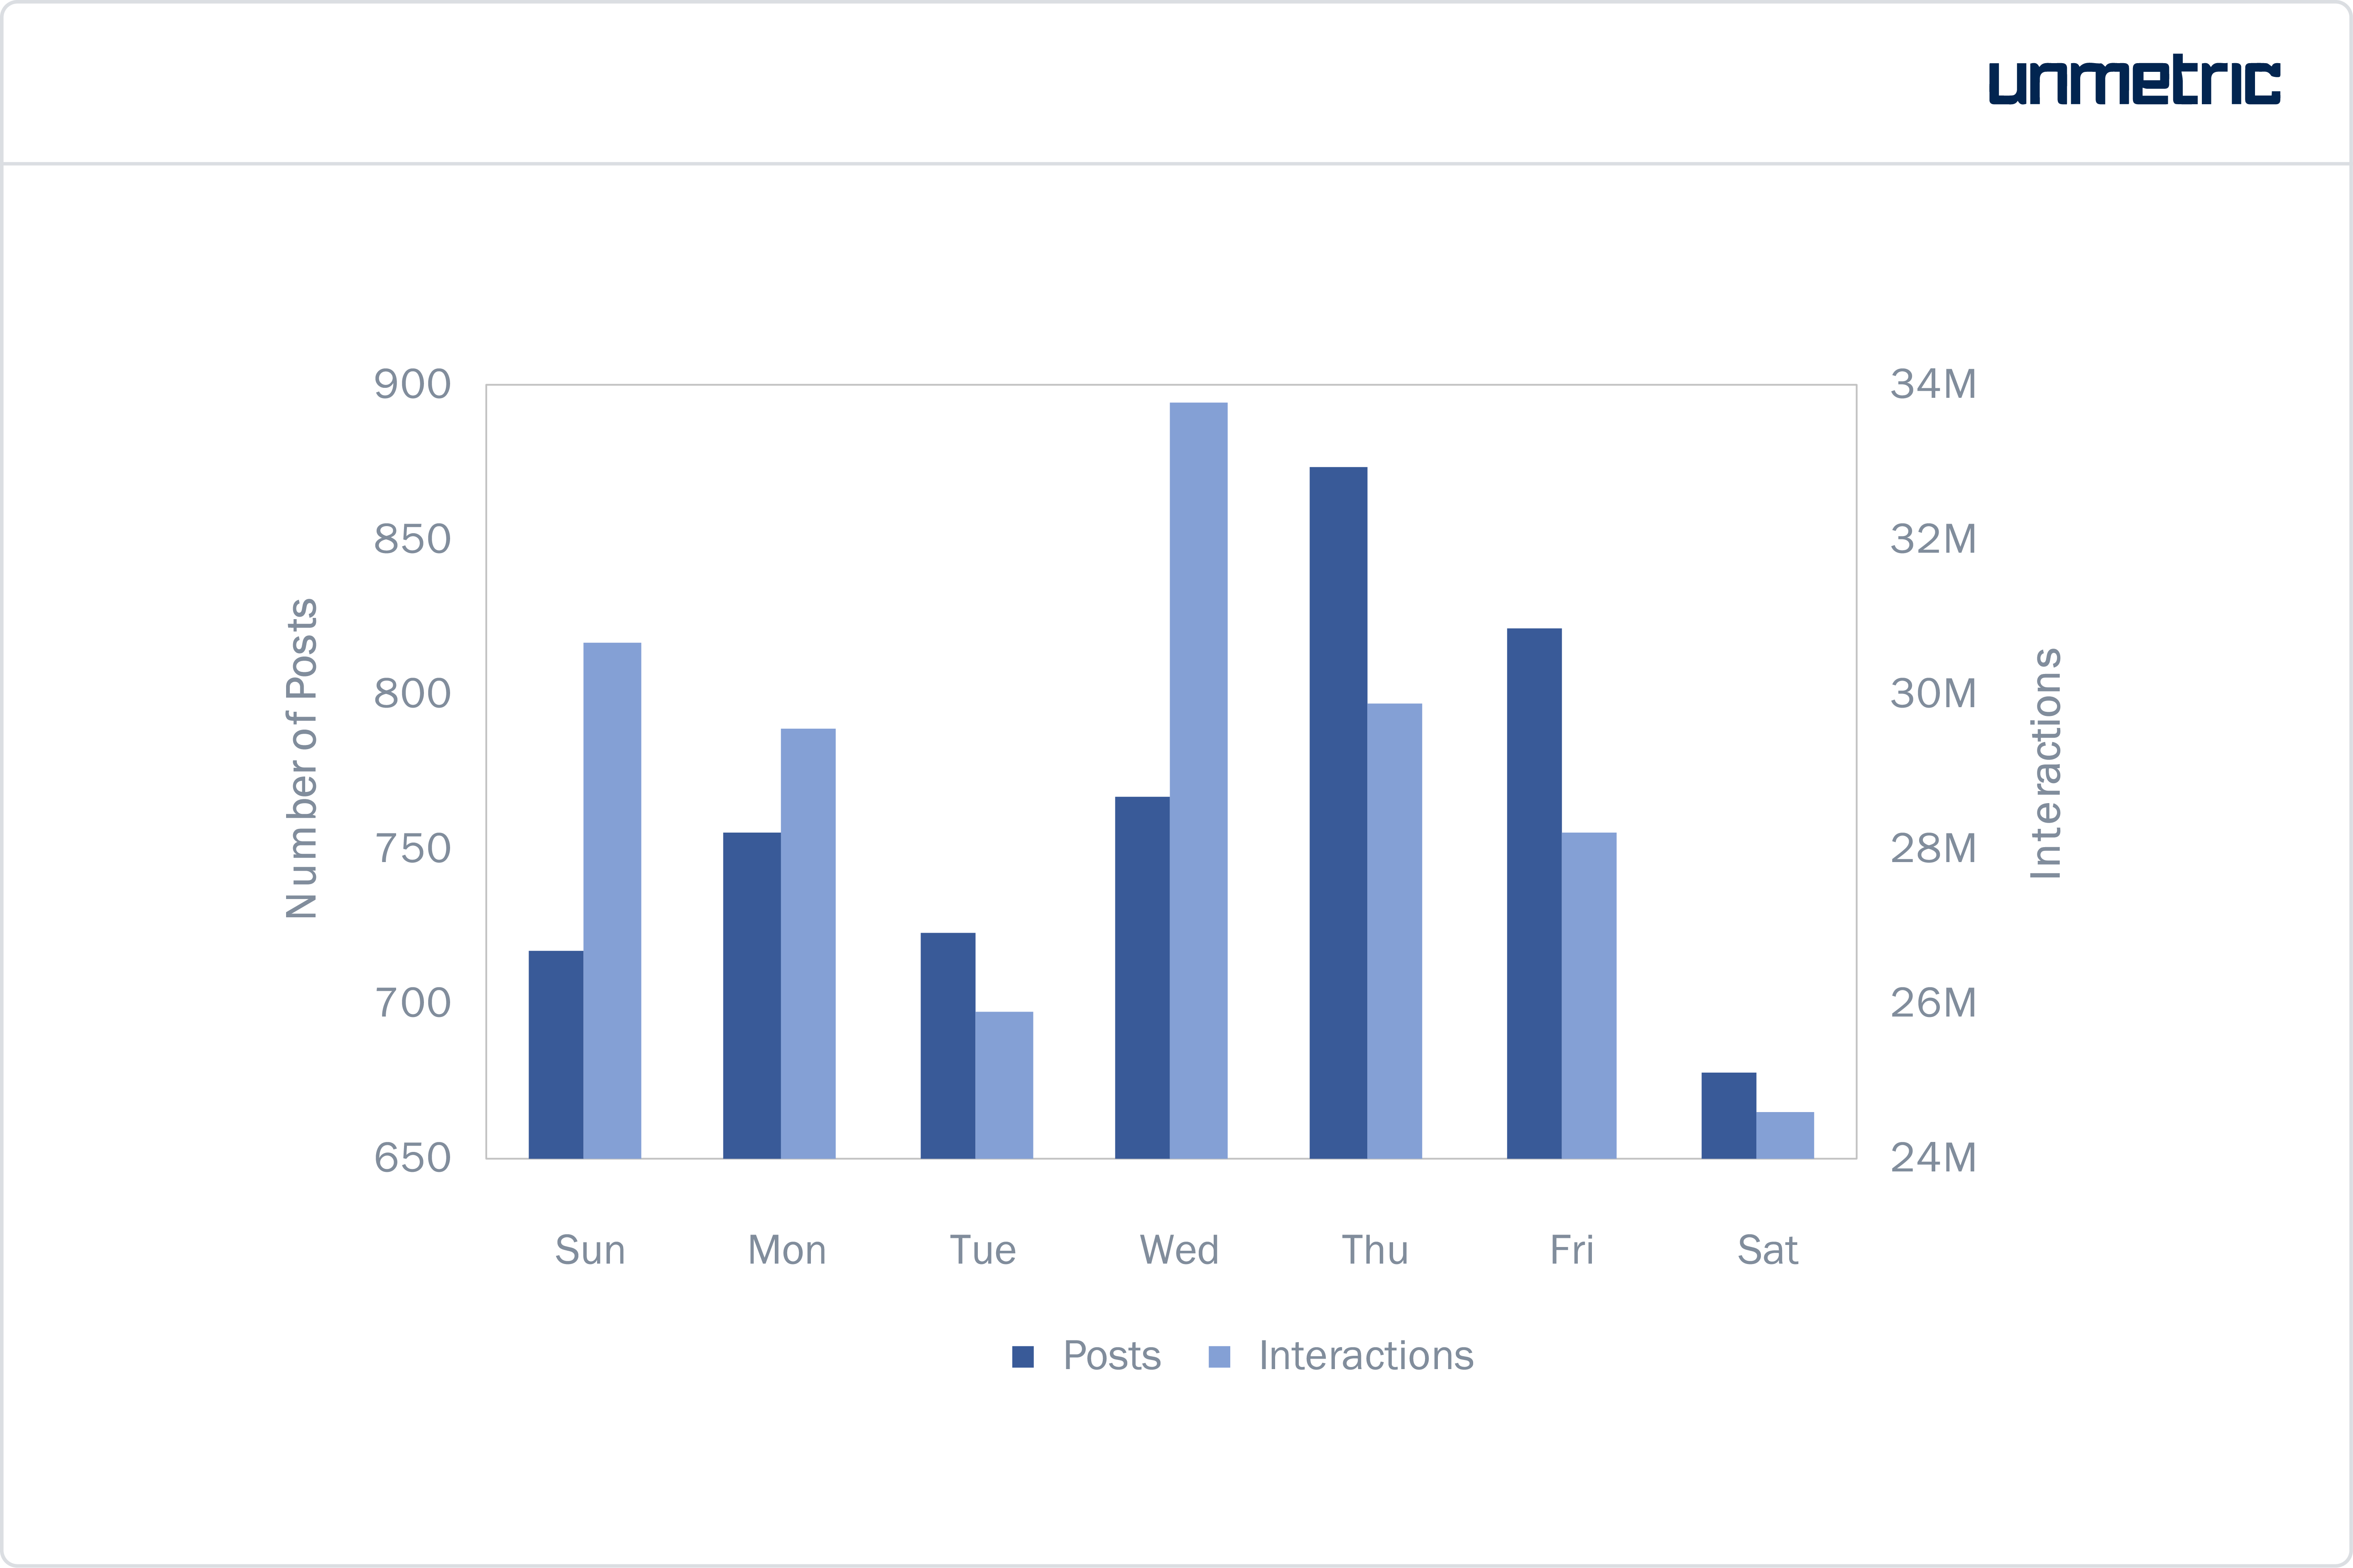 Number of Posts and Interactions Per Day of the Week